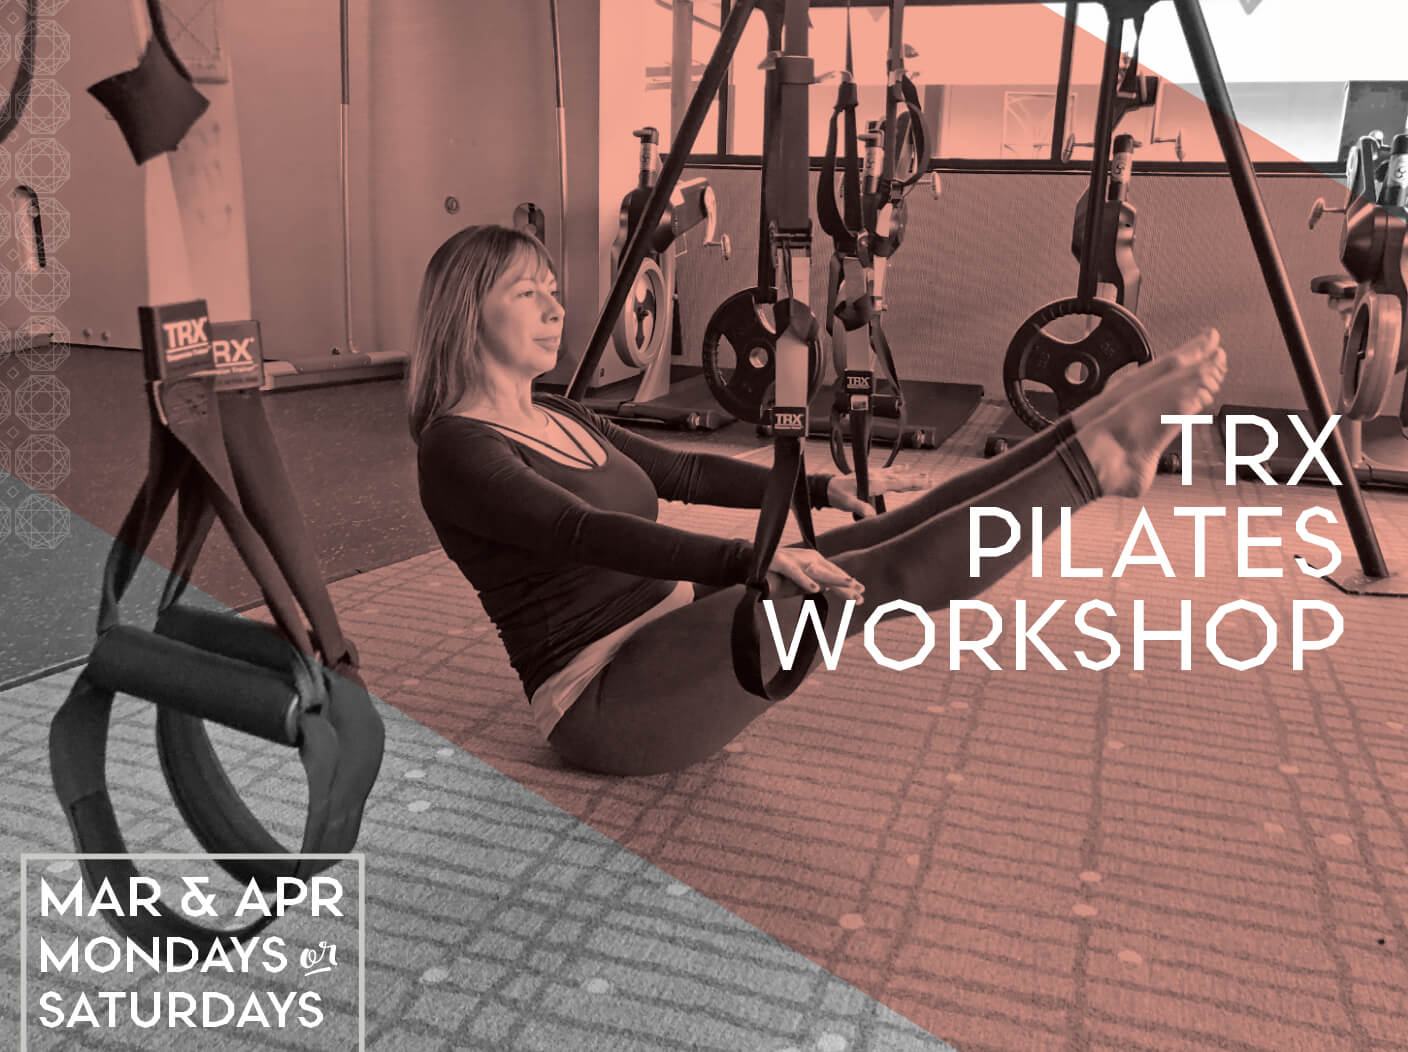 TRX Pilates Workshop